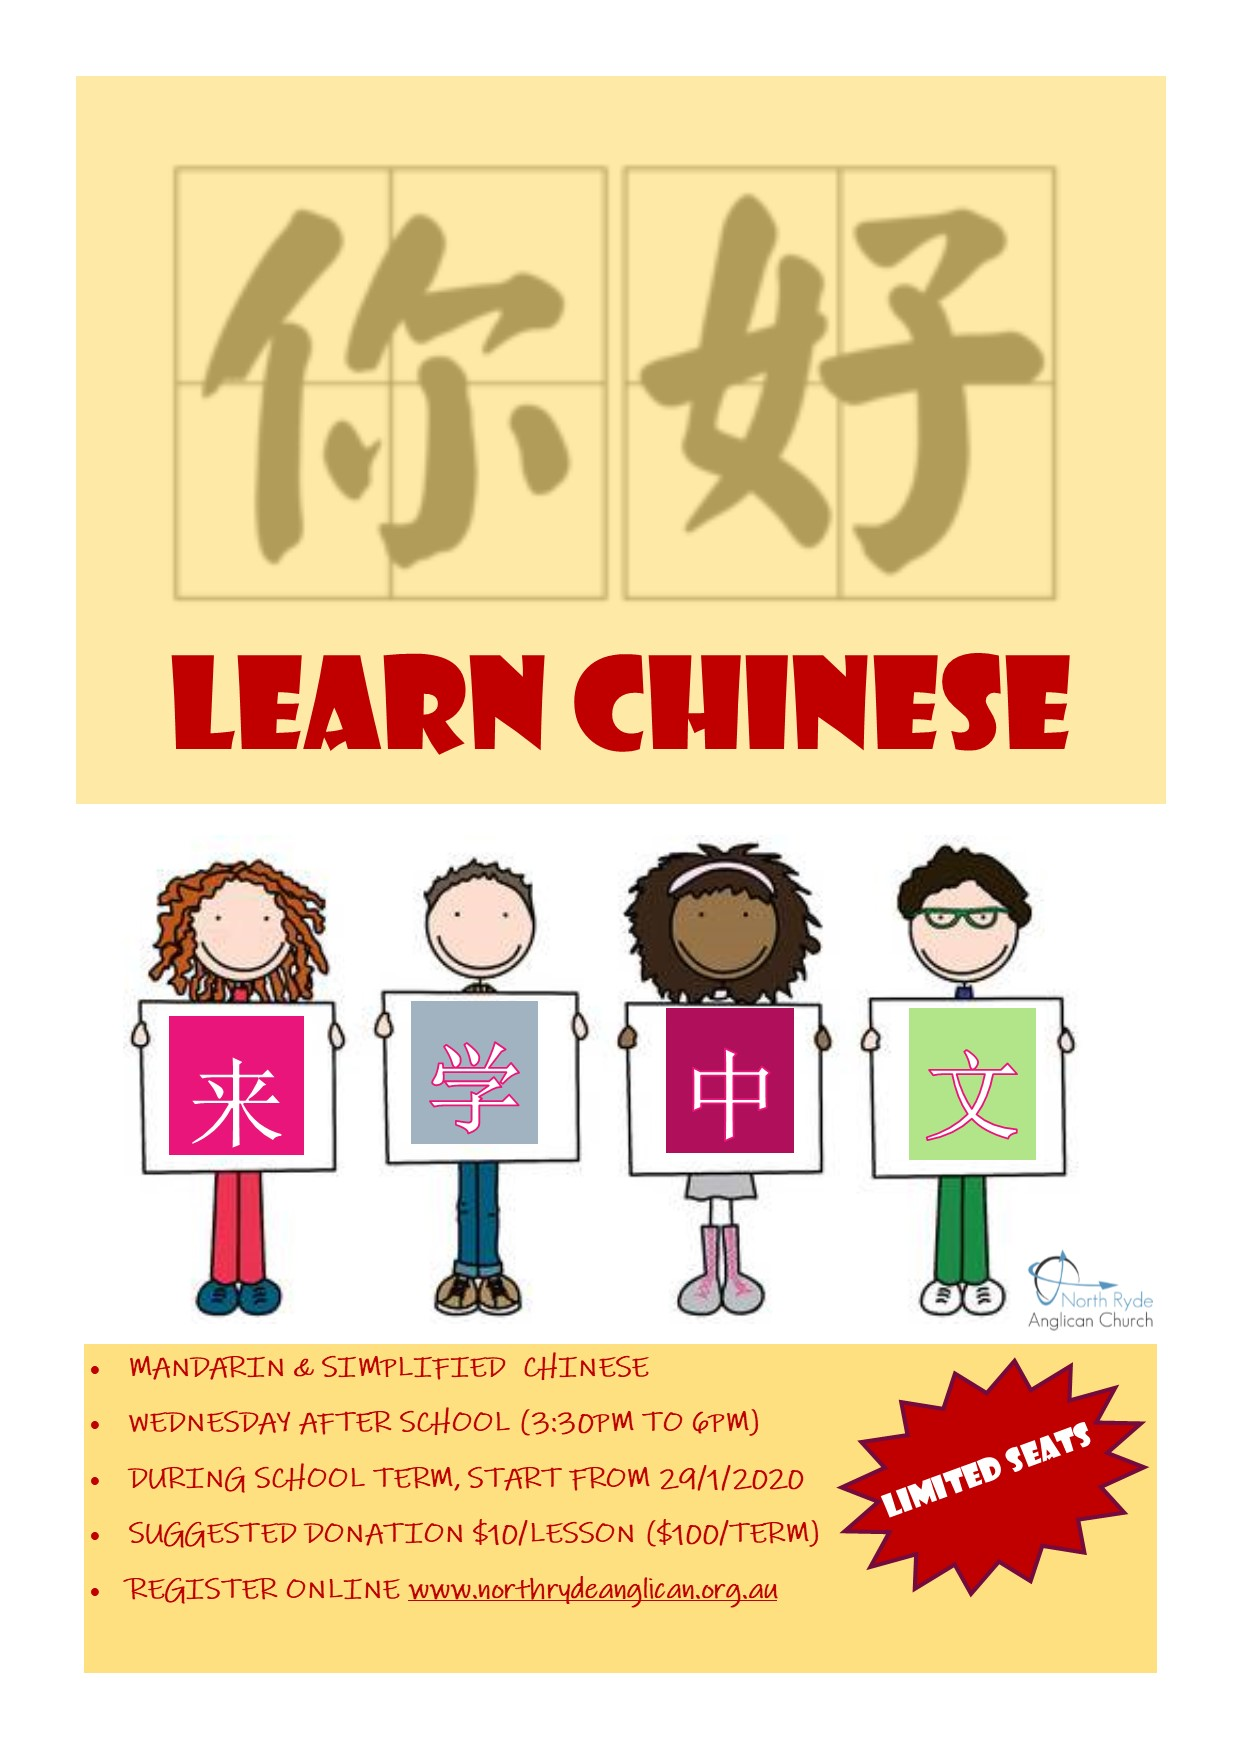 <p>MANDARIN & SIMPLIFIED CHINESEWEDNESDAY AFTER SCHOOL (3:30PM TO 6PM)DURING SCHOOL TERM, START FROM 29/1/2020SUGGESTED DONATION $10/LESSON ($100/TERM)REGISTER ONLINE</p>